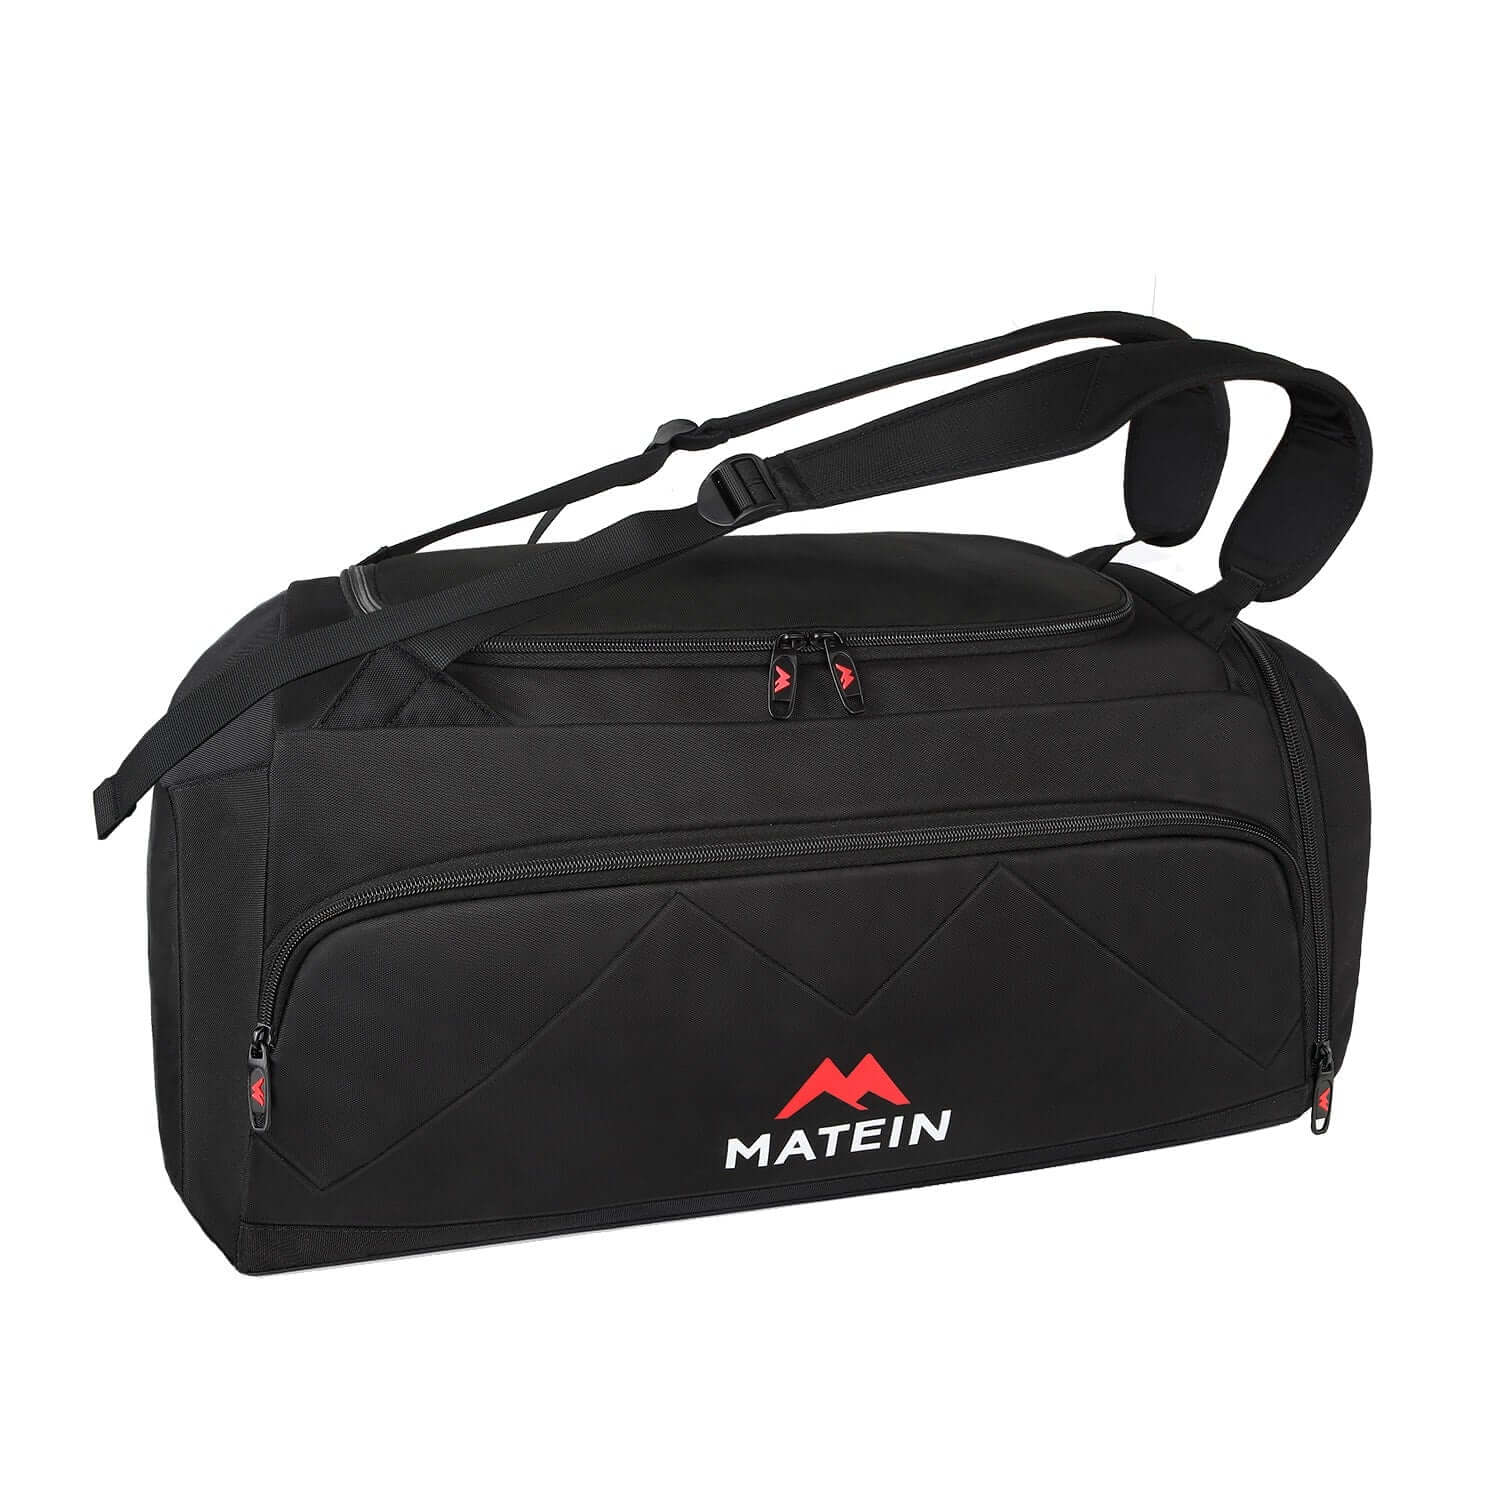 Matein Duffle Bag